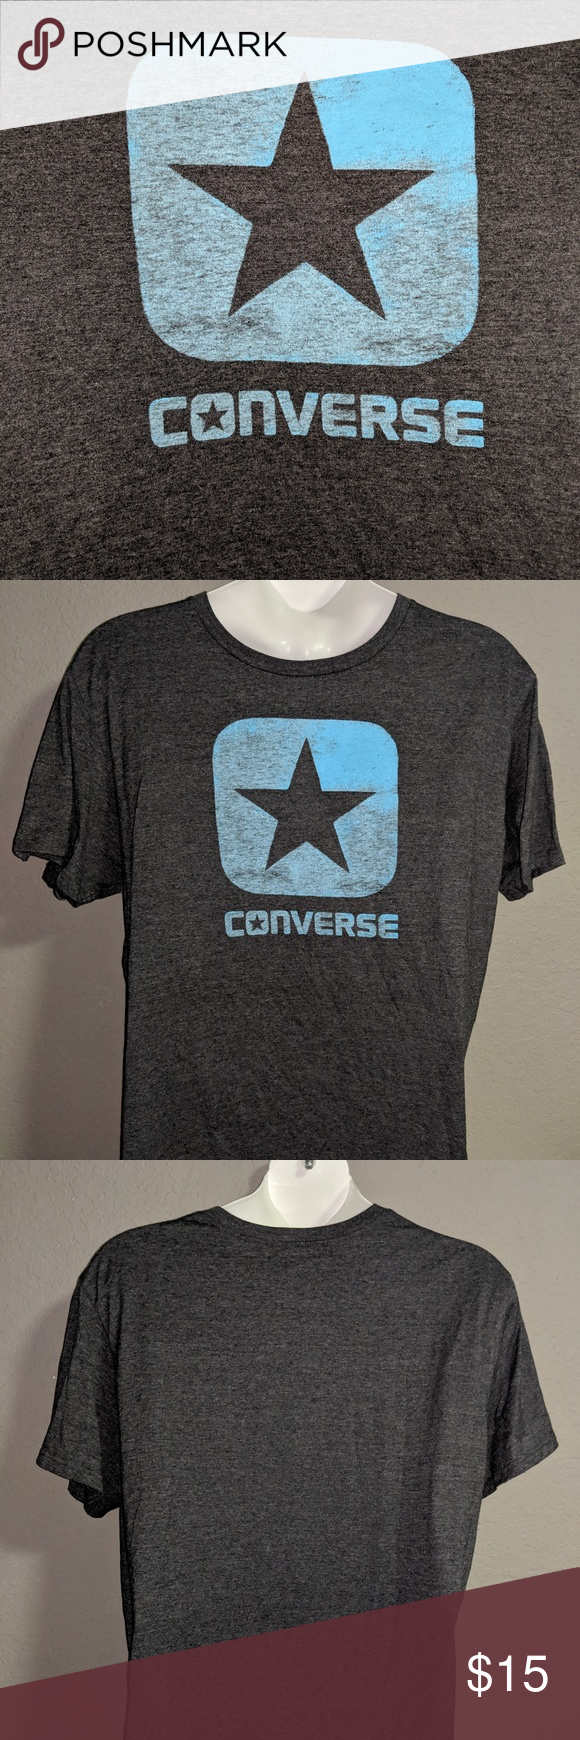 dd3b8dee9265 Converse All-star Teal Blue Logo Graphic T-shirt Converse All Star Chuck  Taylor Teal Light Blue Logo and Grey Vintage Faded Graphic Tee Men s XXL  2XL ...